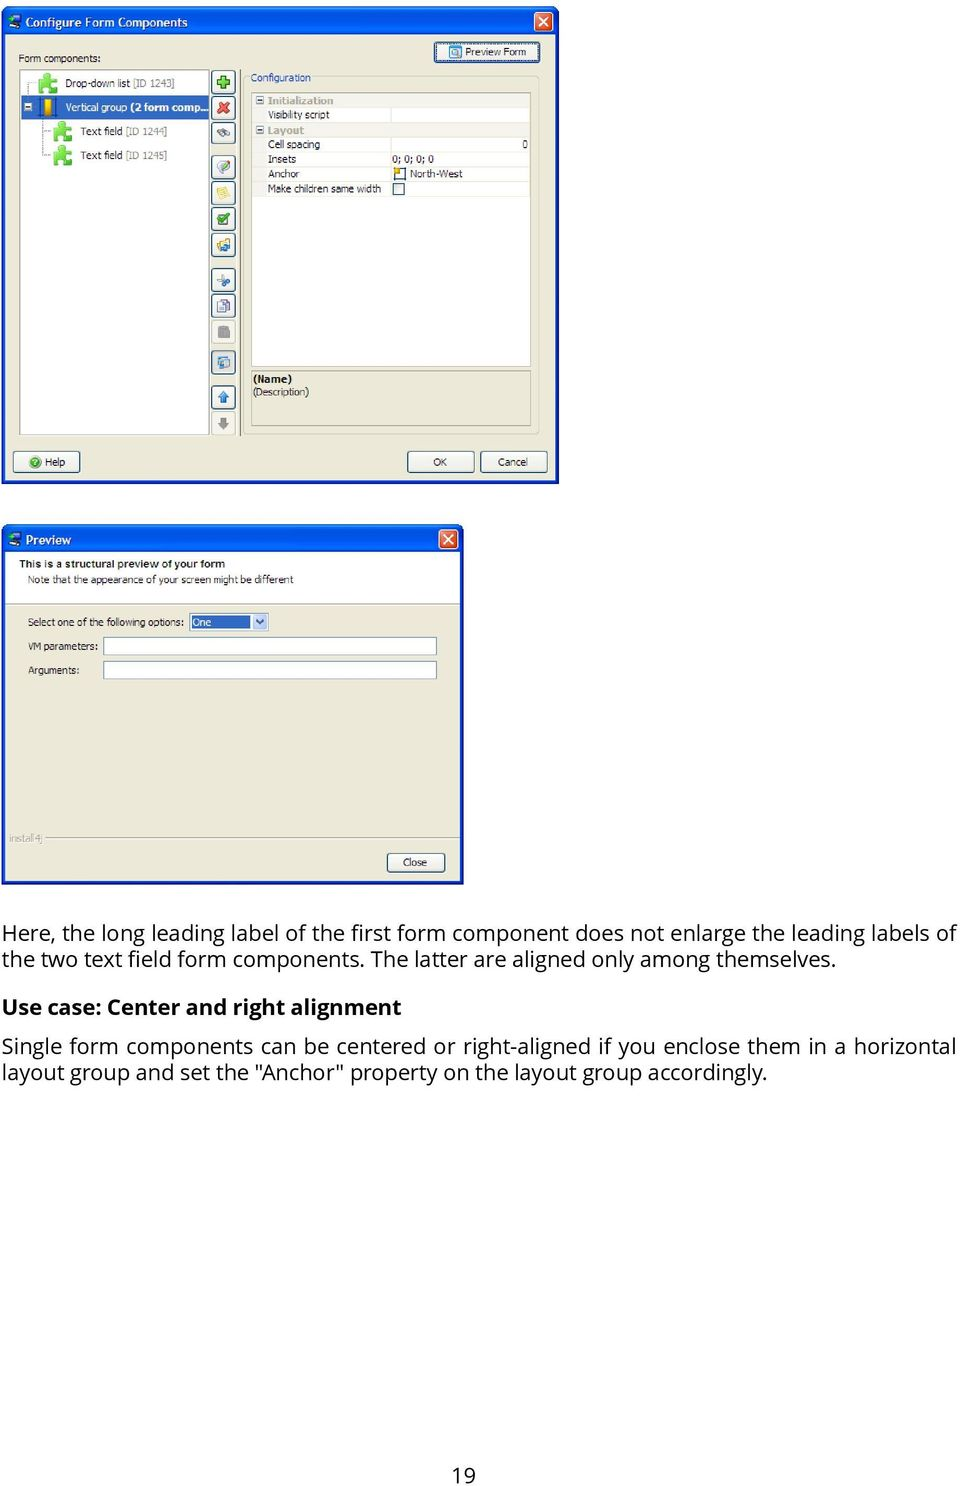 Use case: Center and right alignment Single form components can be centered or right-aligned if